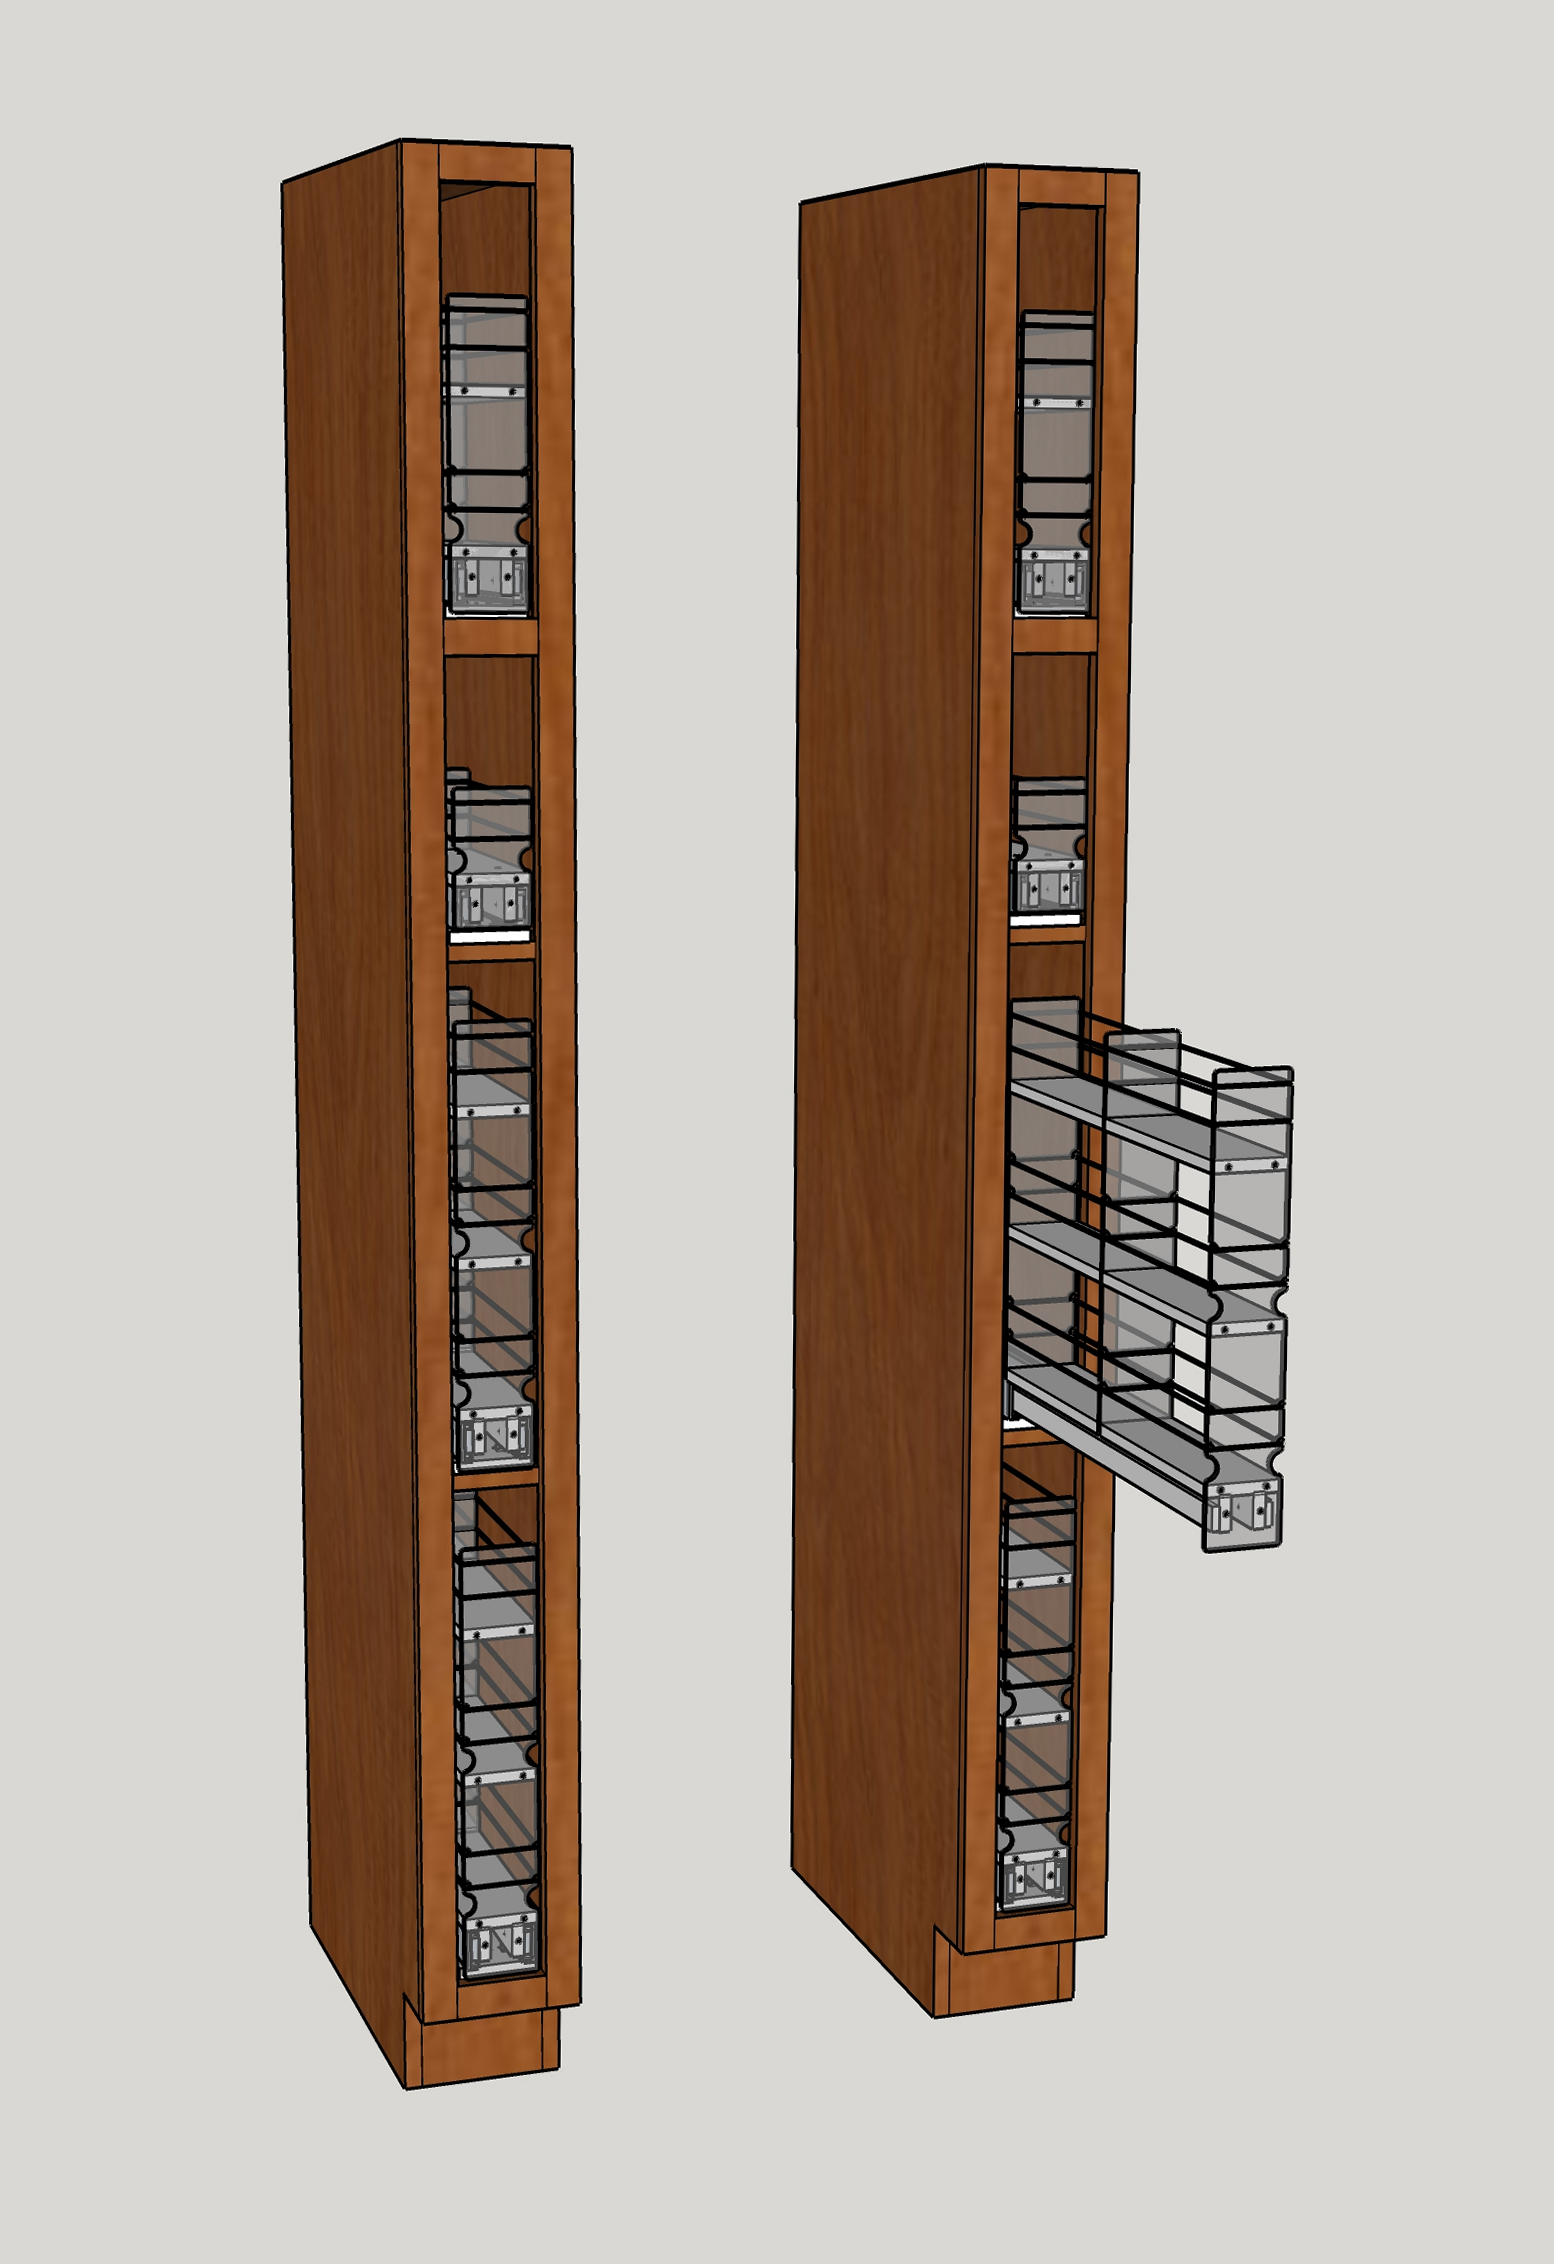 3x1x22, 3x2x22 and 3x3x22 Units in Narrow Cabinet